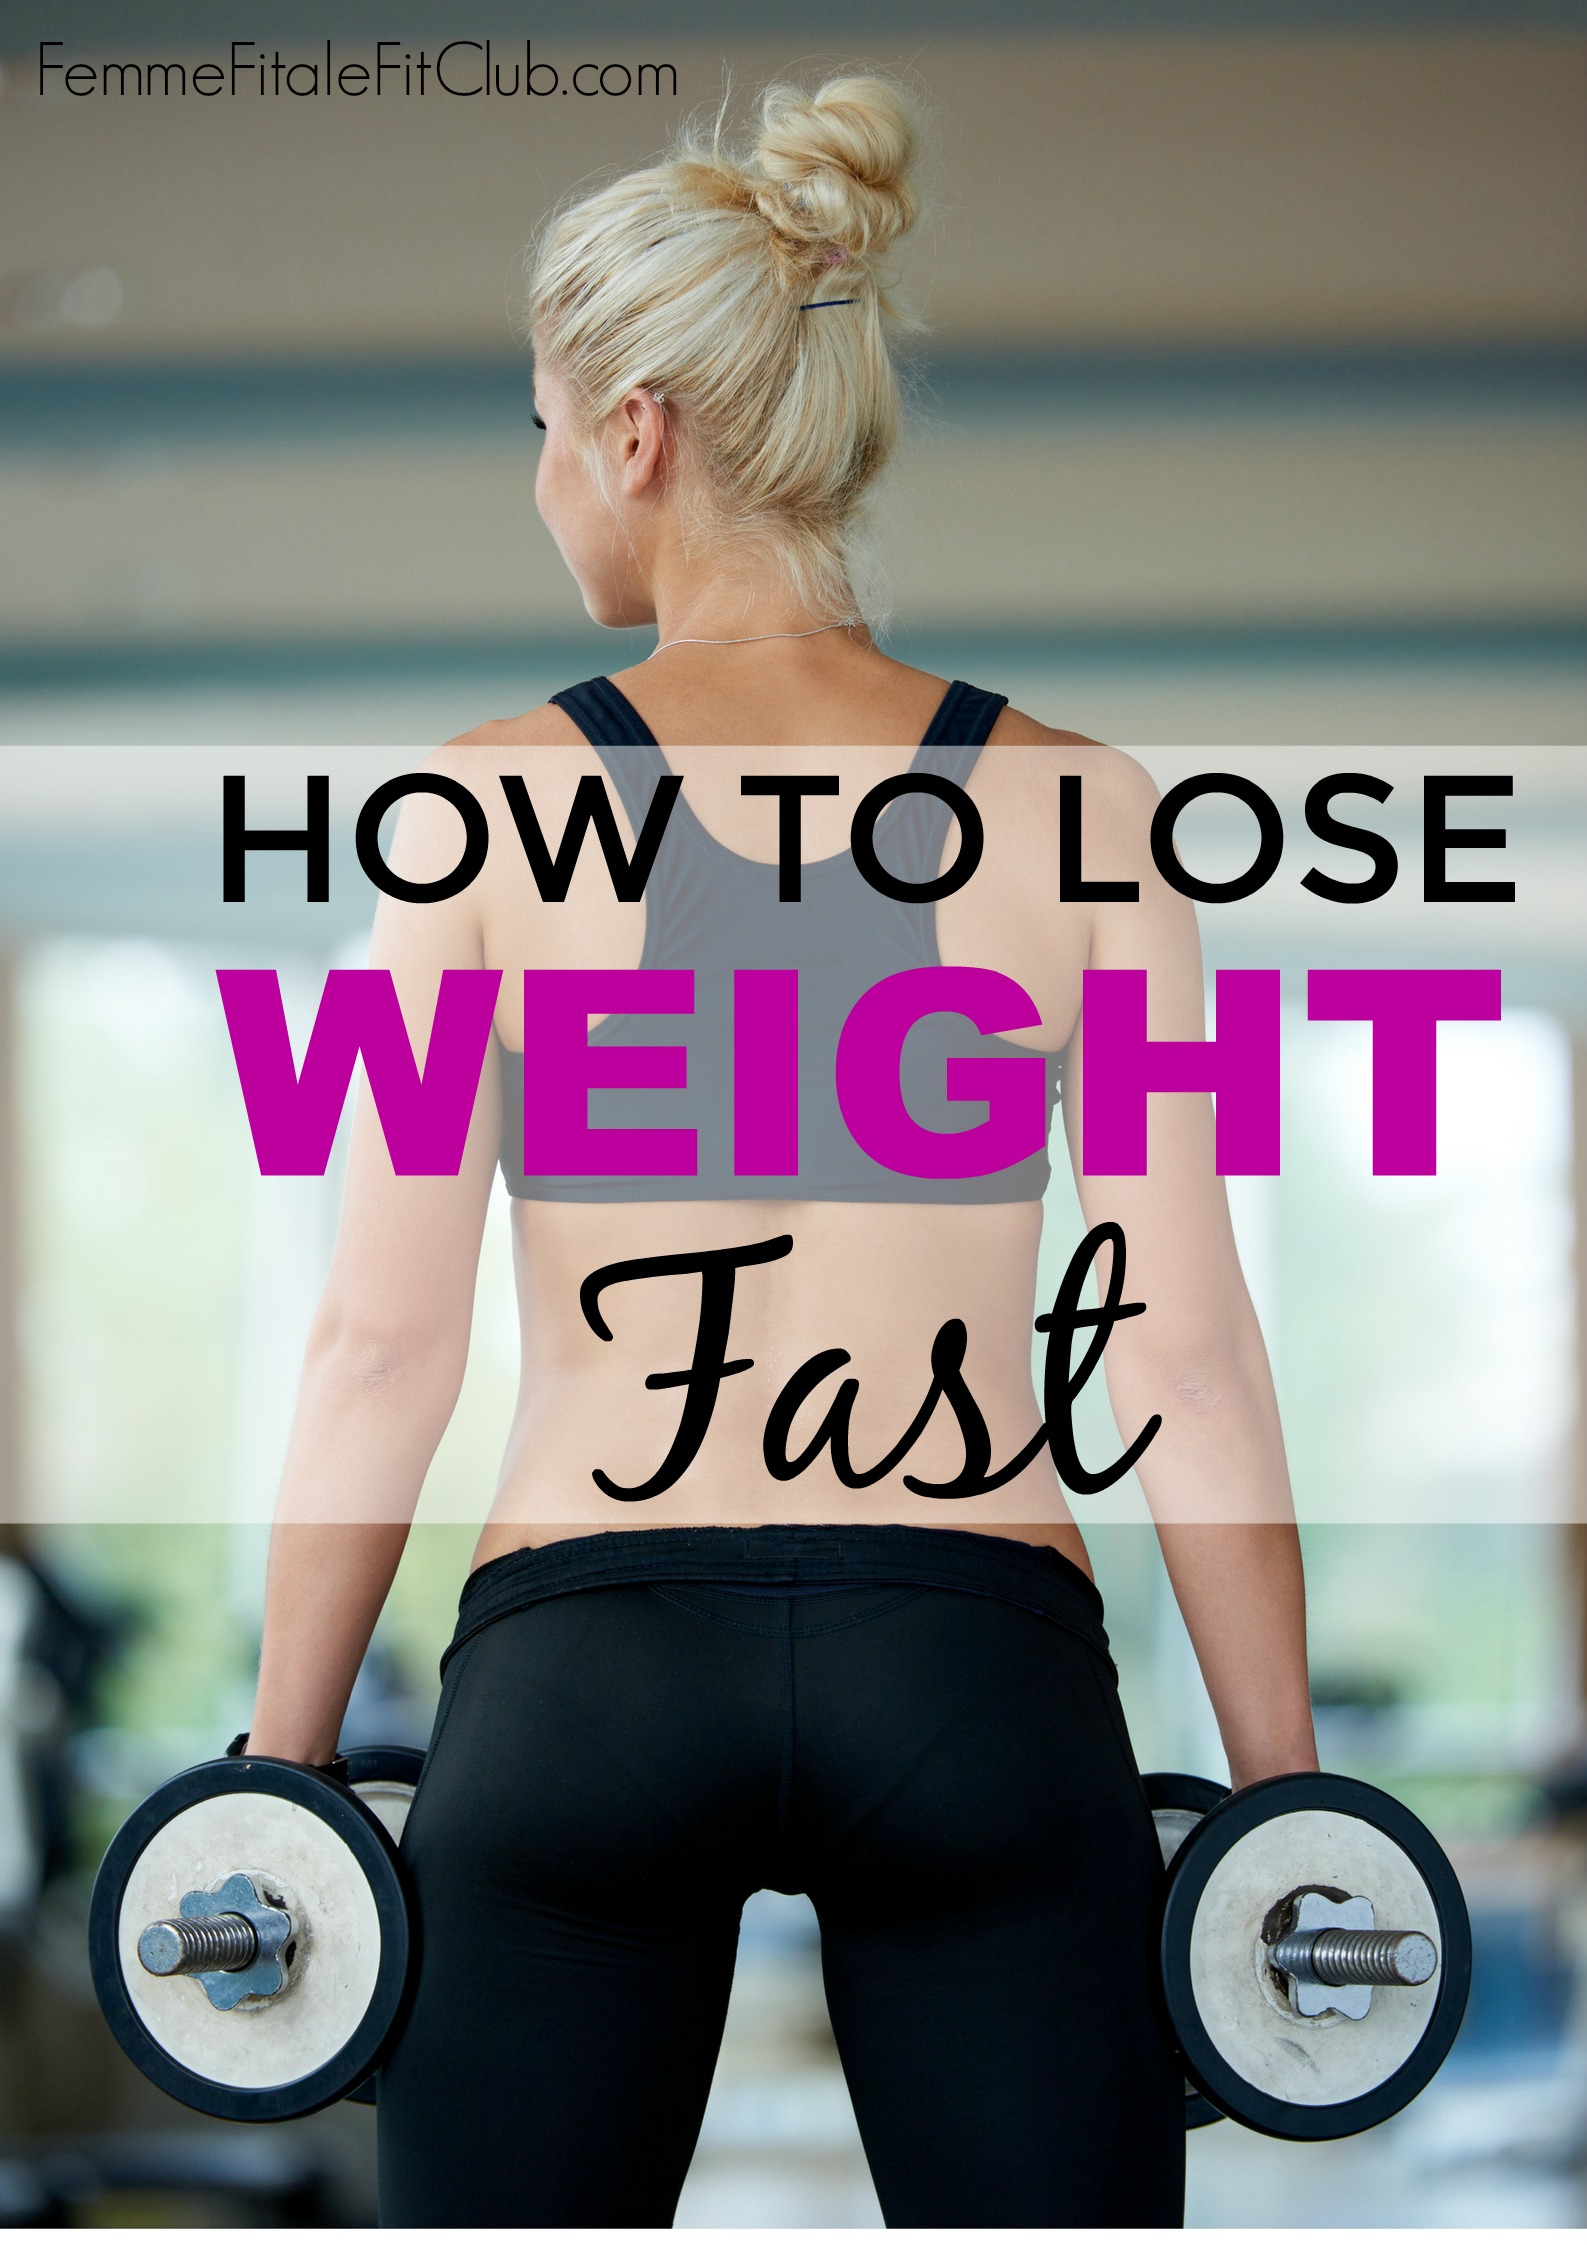 Femme Fitale Fit Club ® BlogHow To Lose Weight Fast ...